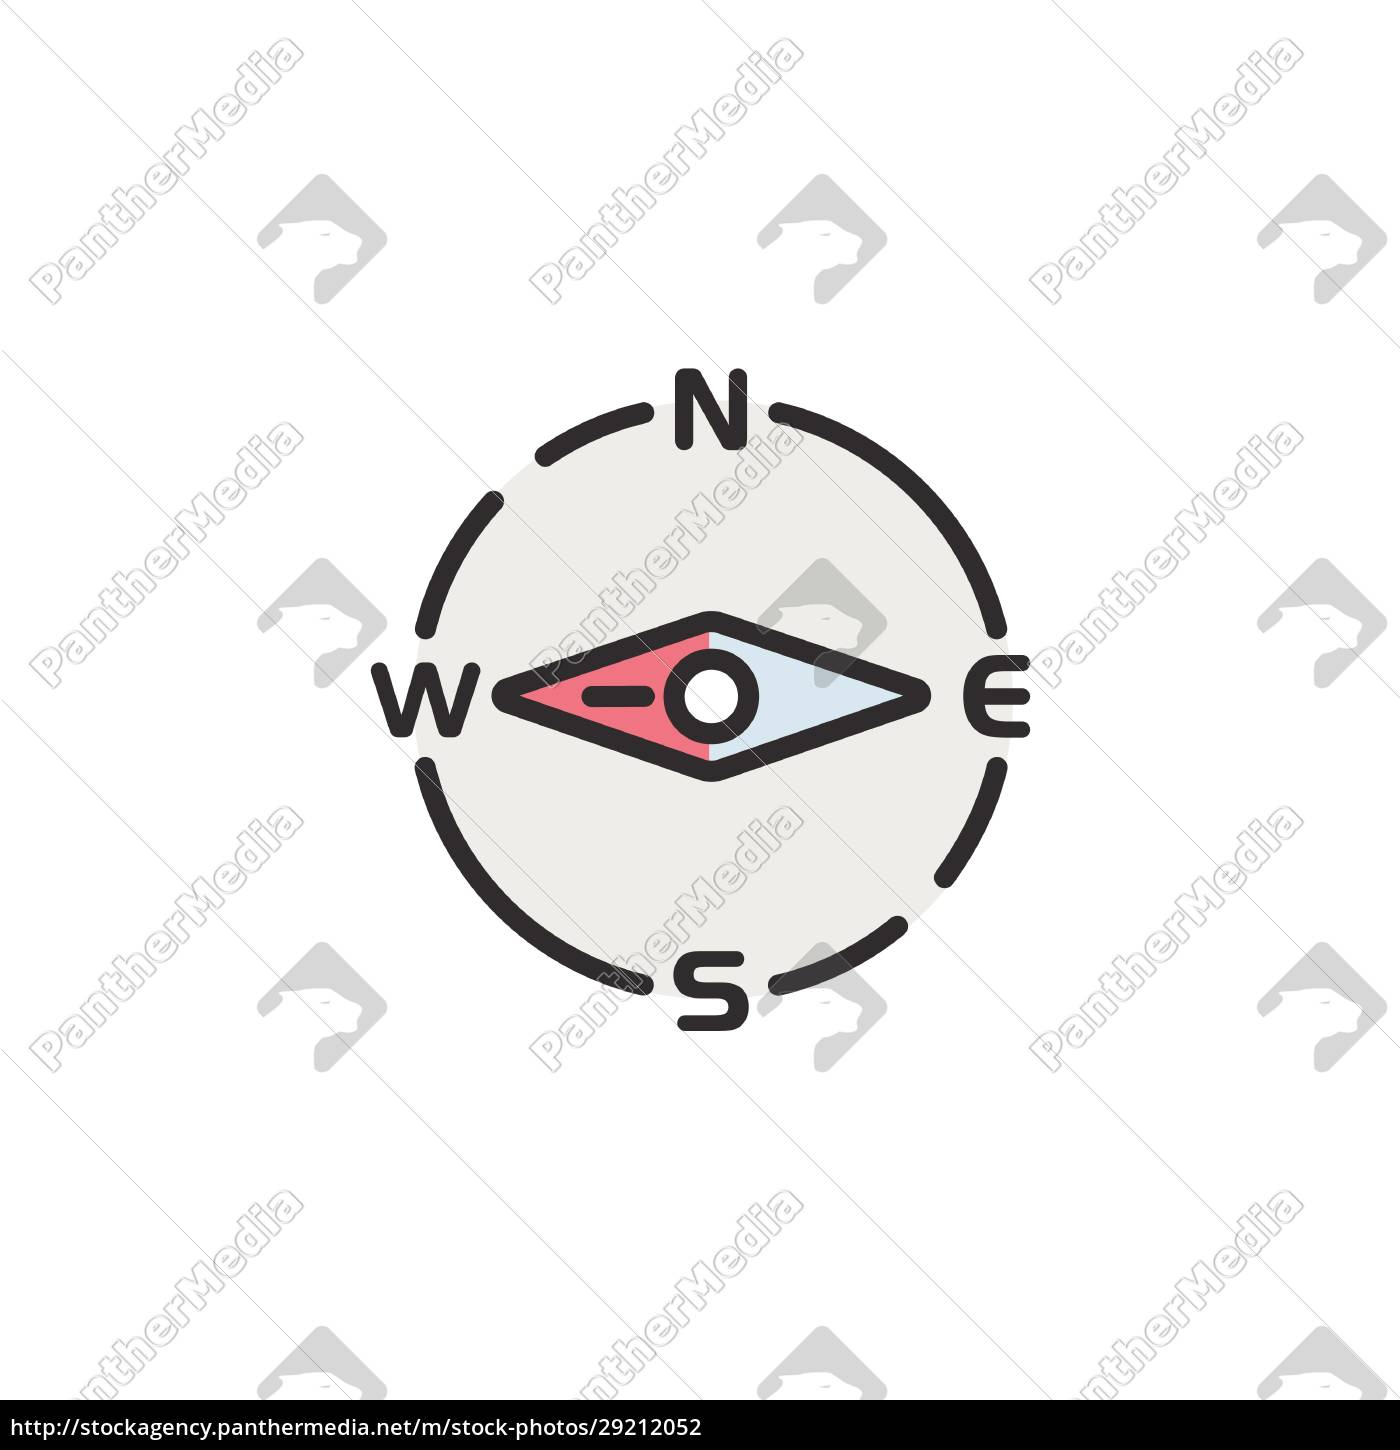 compass, west, direction., filled, color, icon. - 29212052